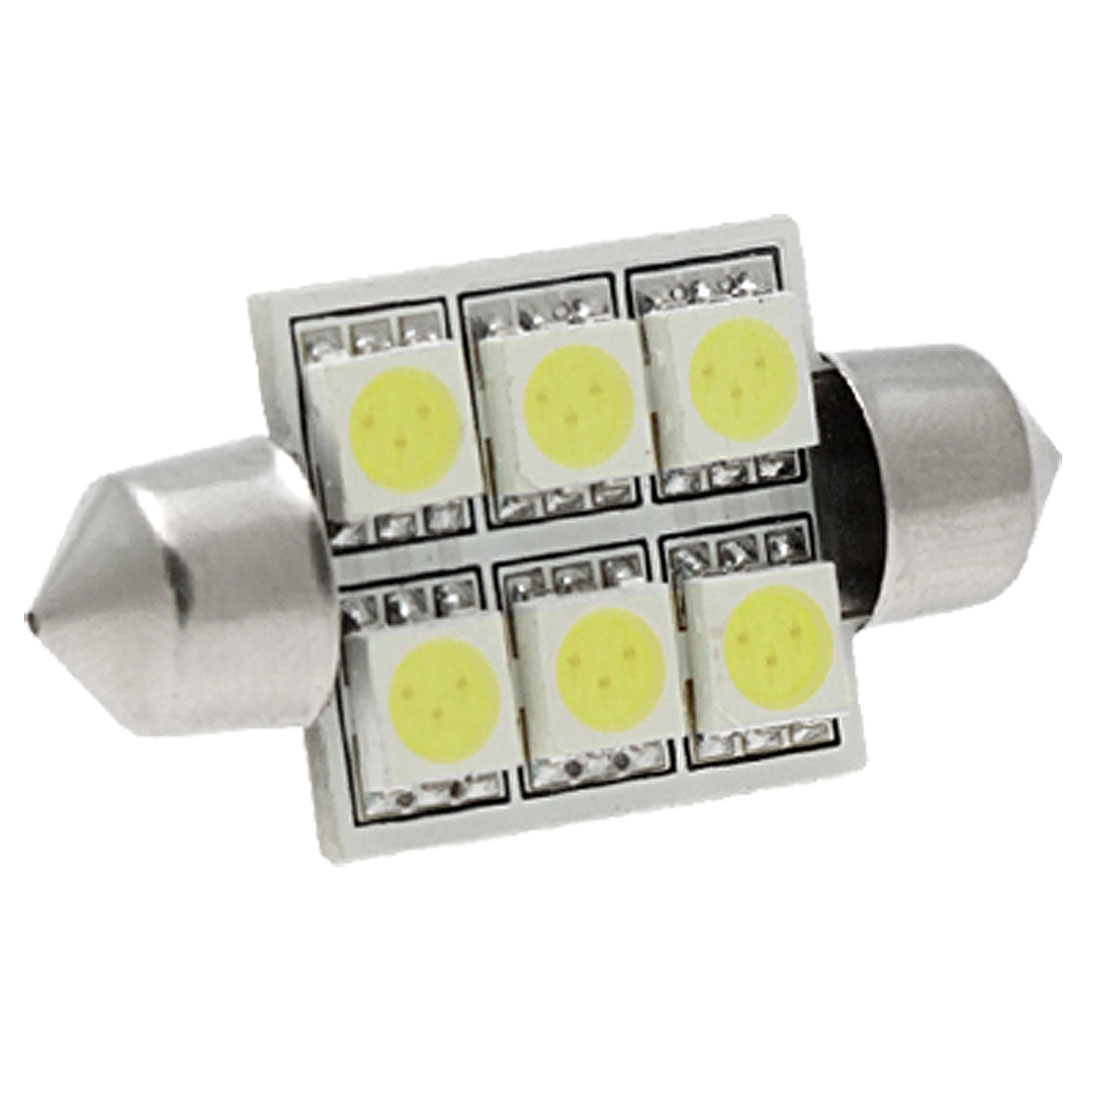 37mm White 5050 SMD 6 LED Festoon Bulb License Plate Light Lamp for Car